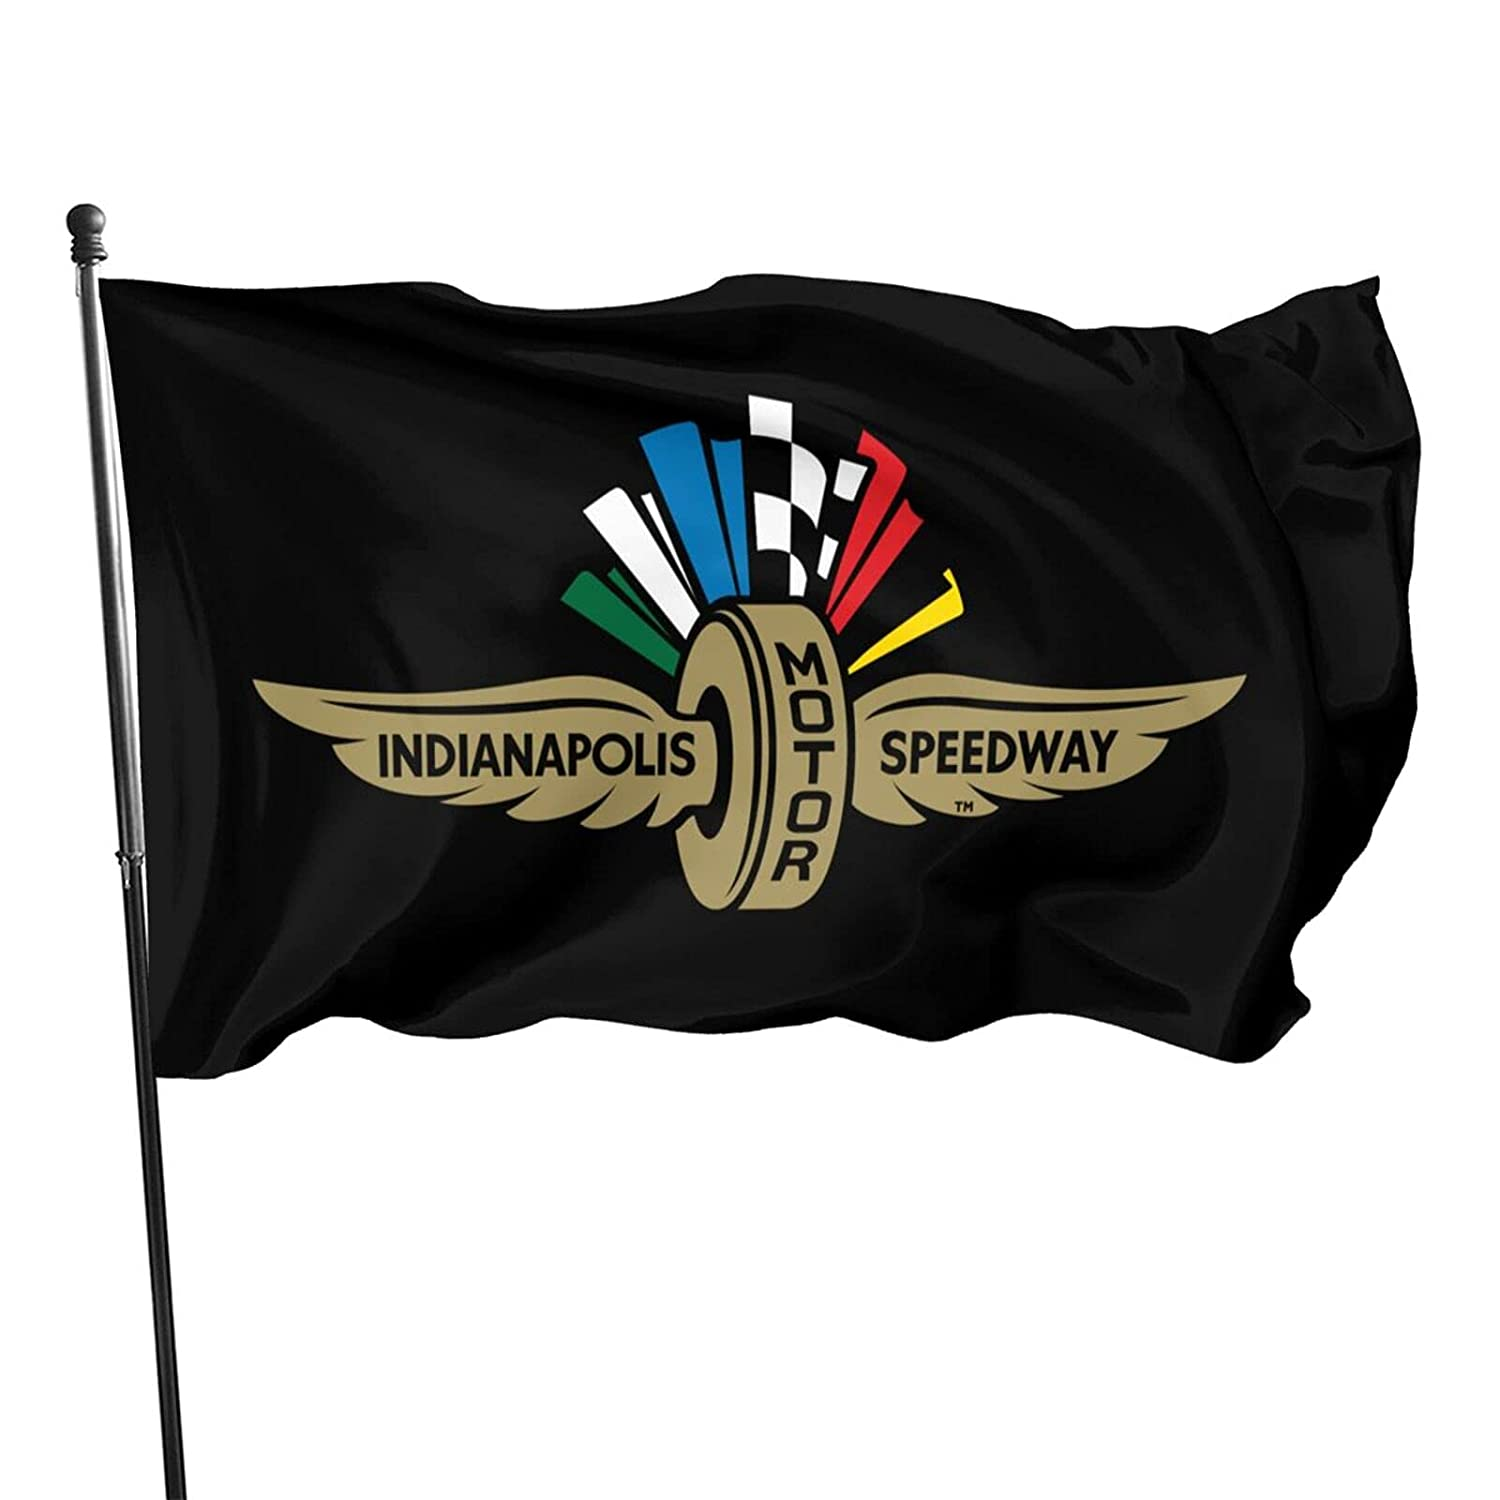 Indy 500 The Flags Outdoor House Porch Welcome Holiday Decoration Flag Suitable For Christmas/Birthday/Happy New Year 3x5 Ft Garden Flag